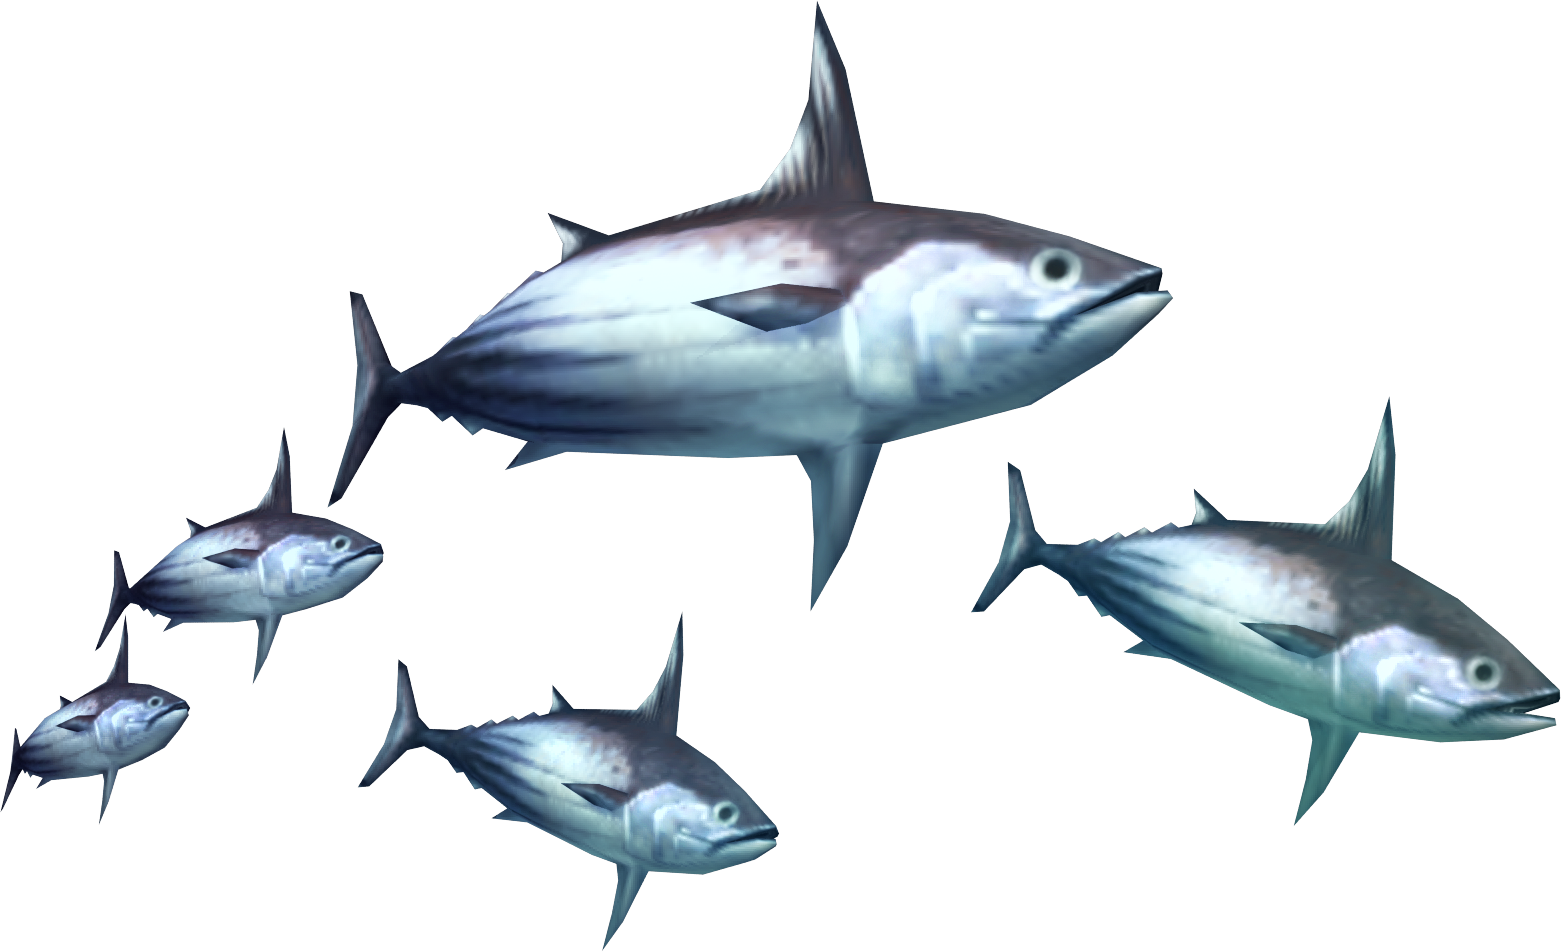 Tuna clipart fish meat. Carves monster hunter wiki